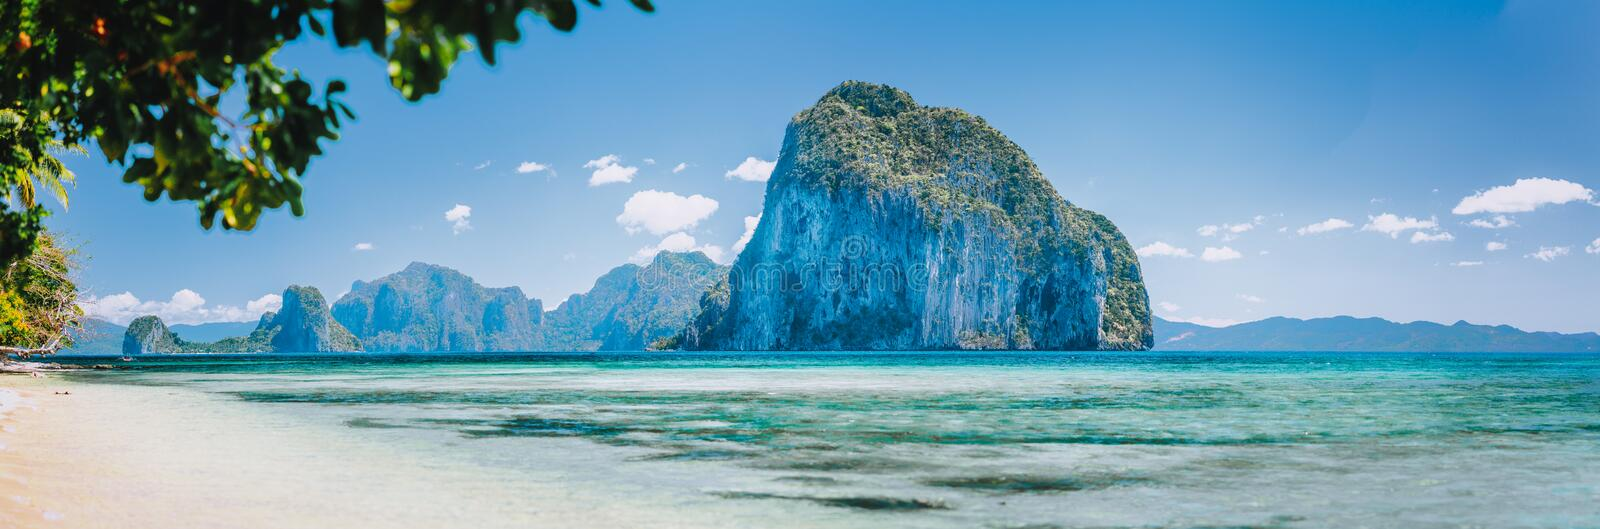 Bay beach and mountains isles panorama in Palawan Philippines Islands view from turquoise shallow sea at sunny day.  stock image